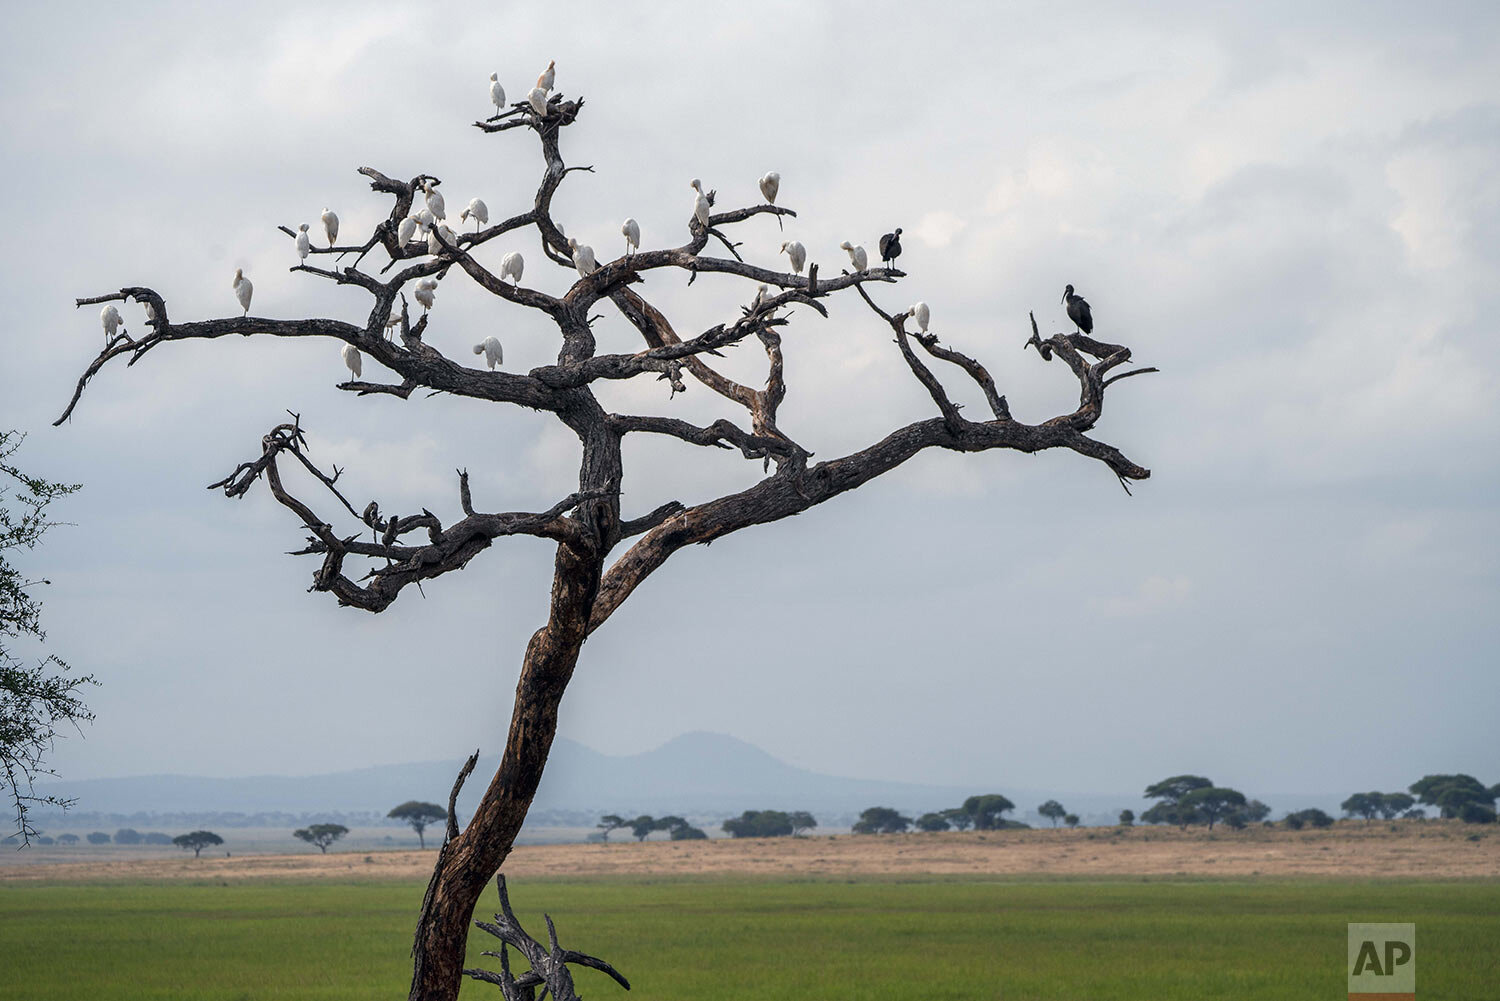 Birds perch on the branches of a dead tree in Tanzania's Tarangire National Park, Sunday July 7, 2019. (AP Photo/Jerome Delay)